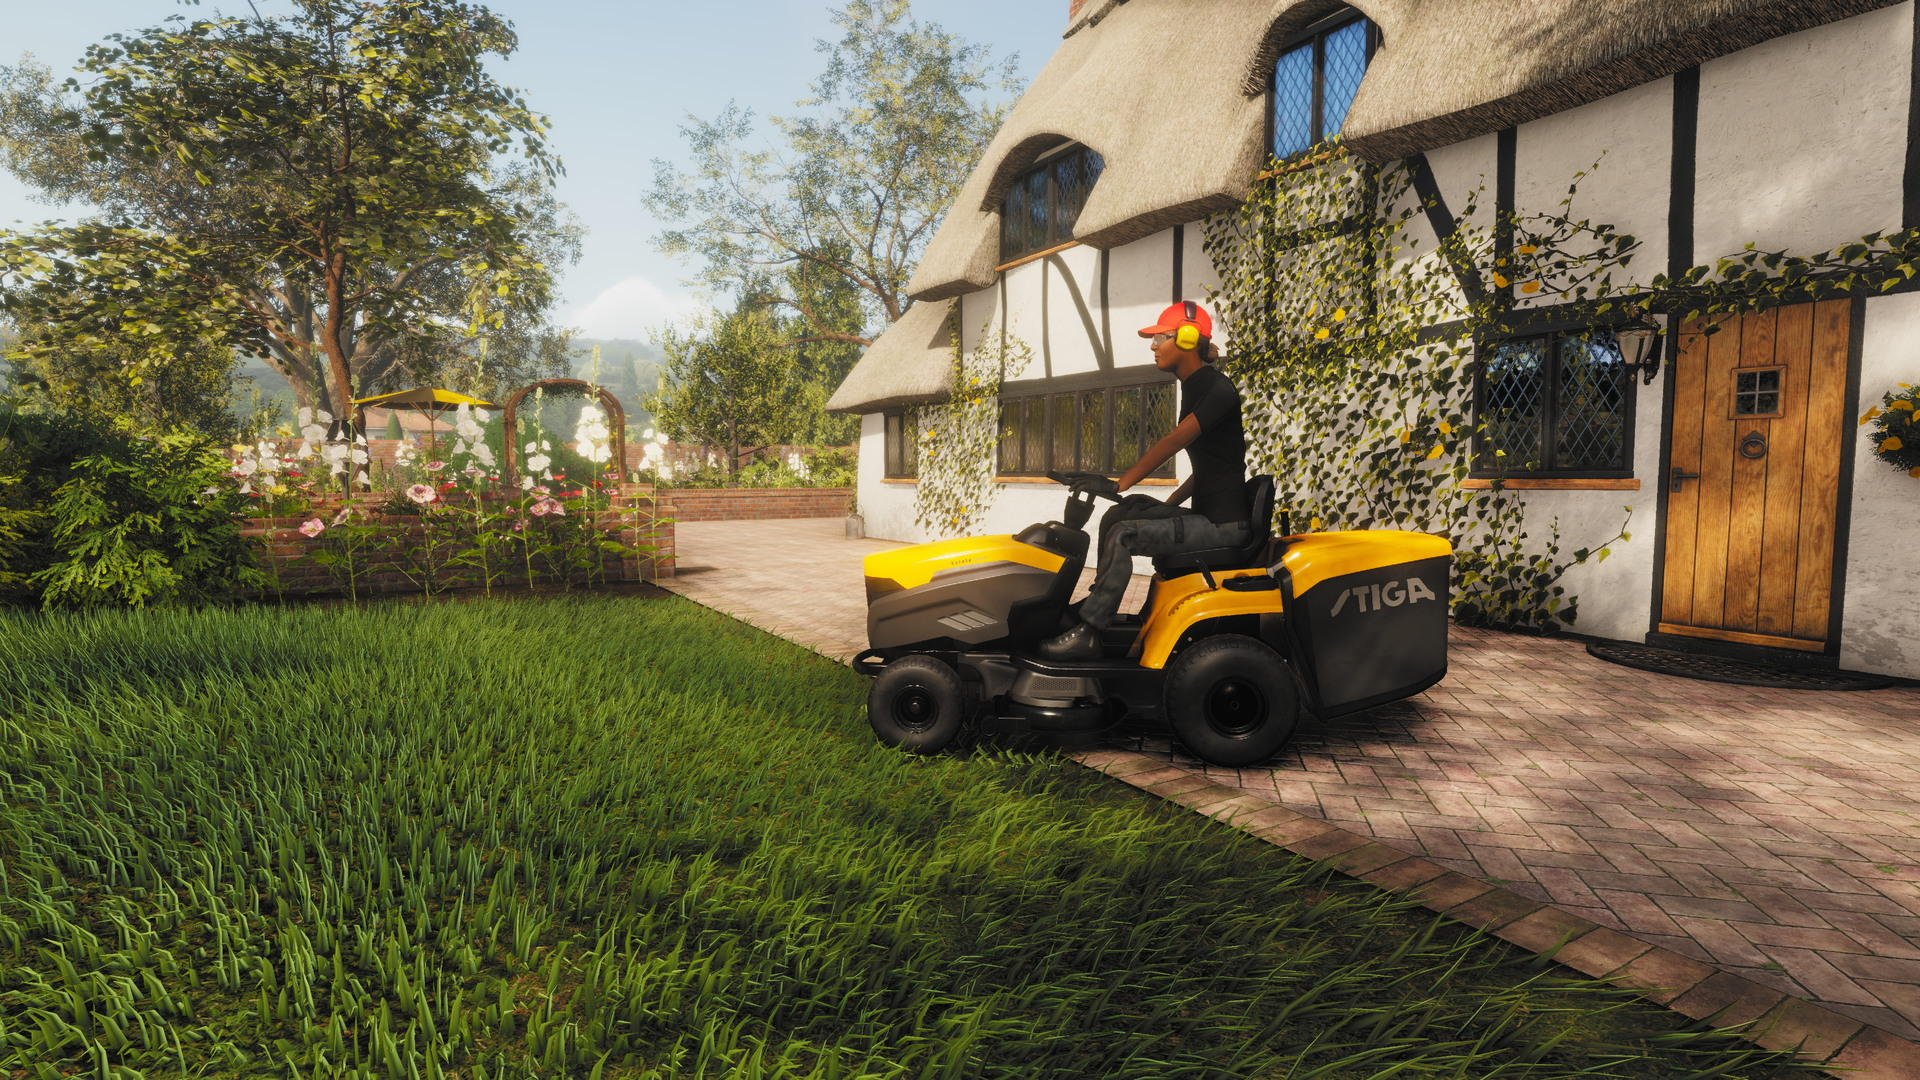 Lawn Mowing Simulator - screenshot 1